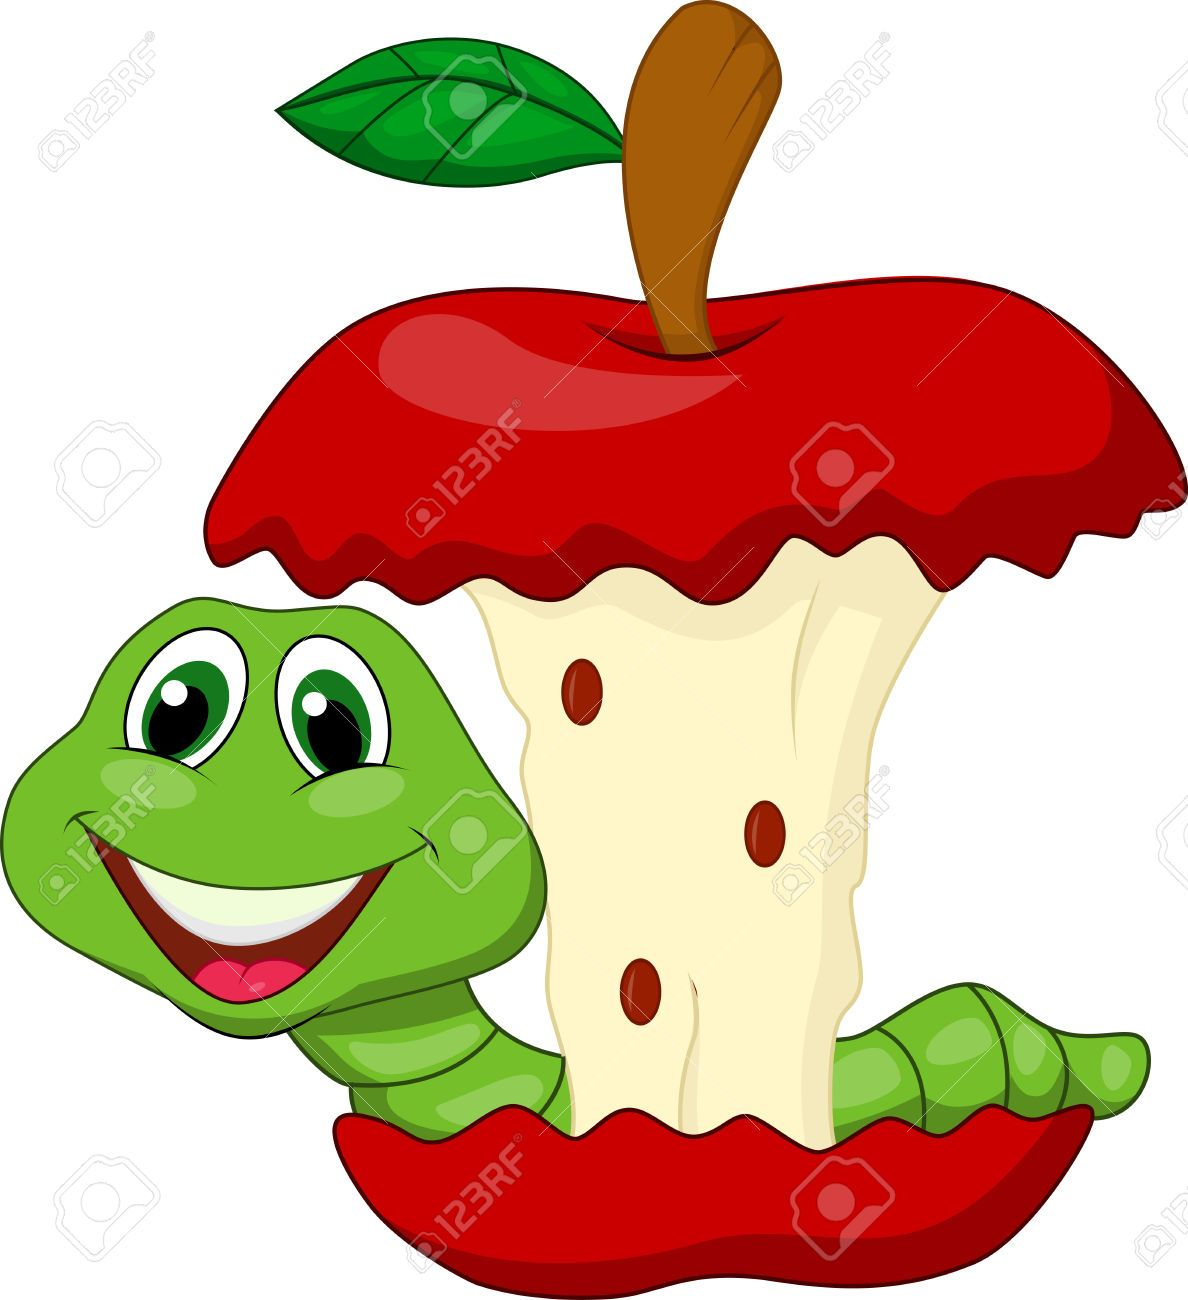 1188x1300 Alarmed And Stunned Red Apple Emoji 102714 Clipart Of Cartoon